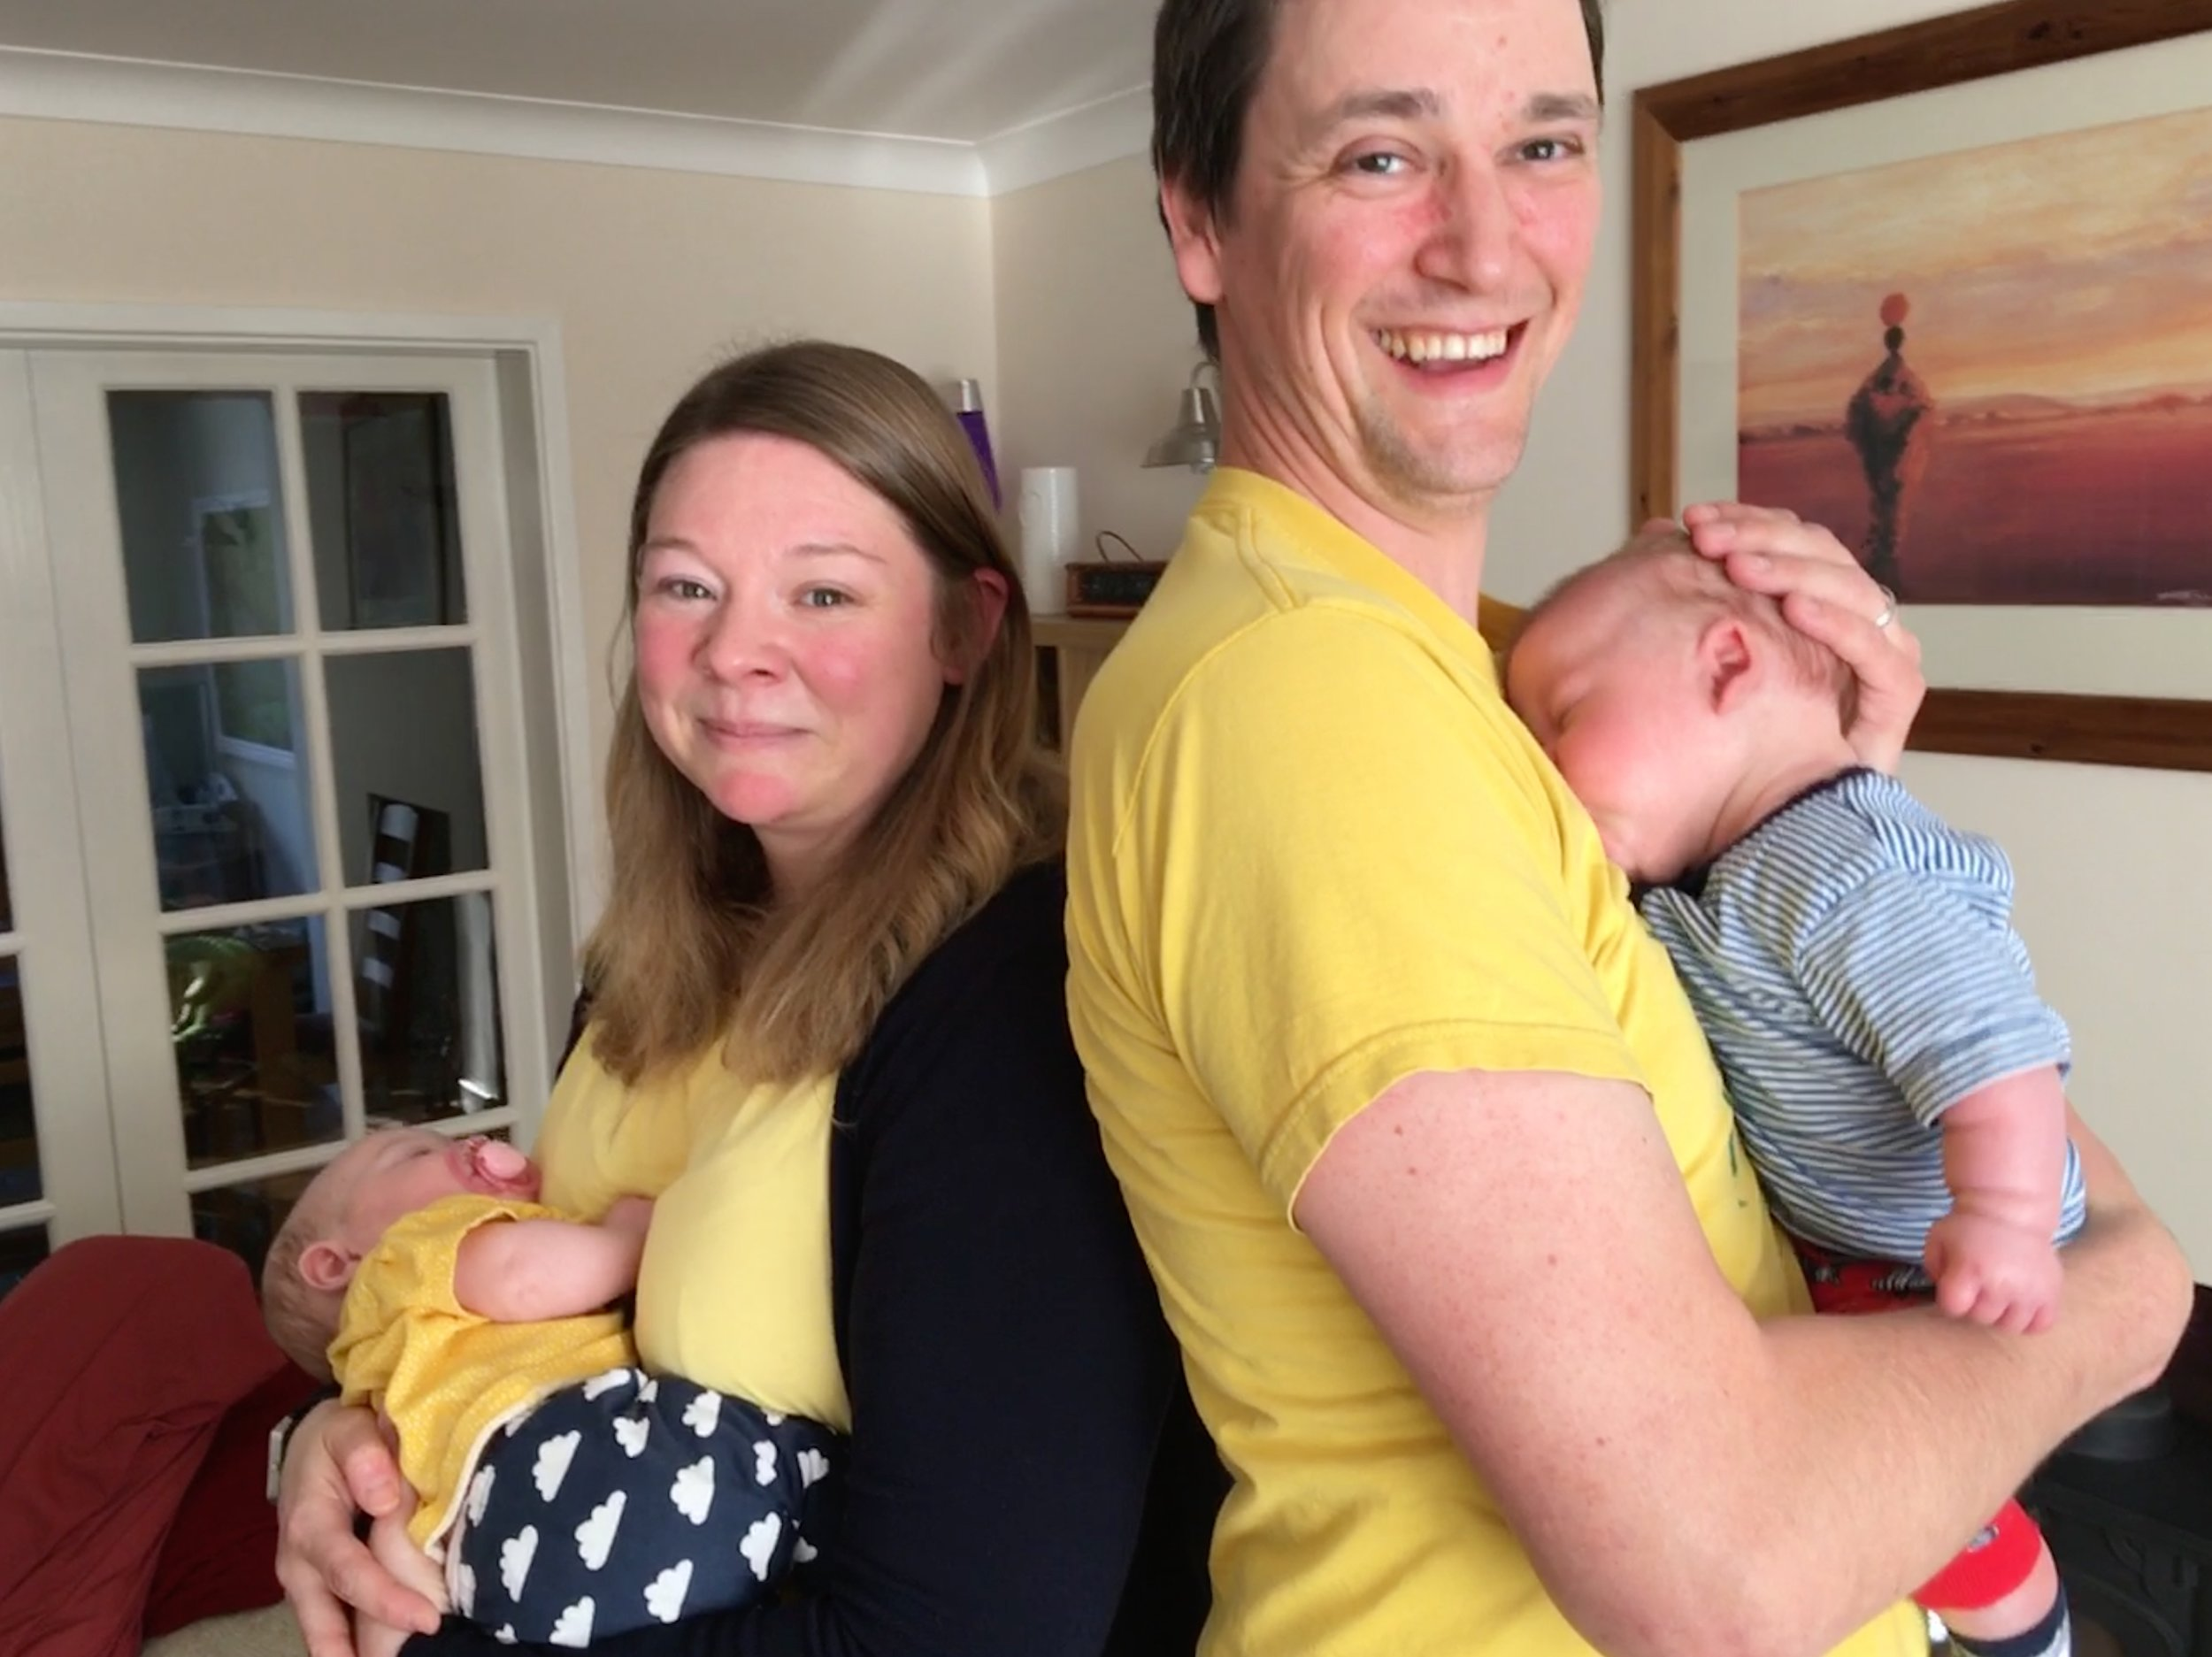 Jo and Steve Peck with twins Harriet and Barney, May 2018